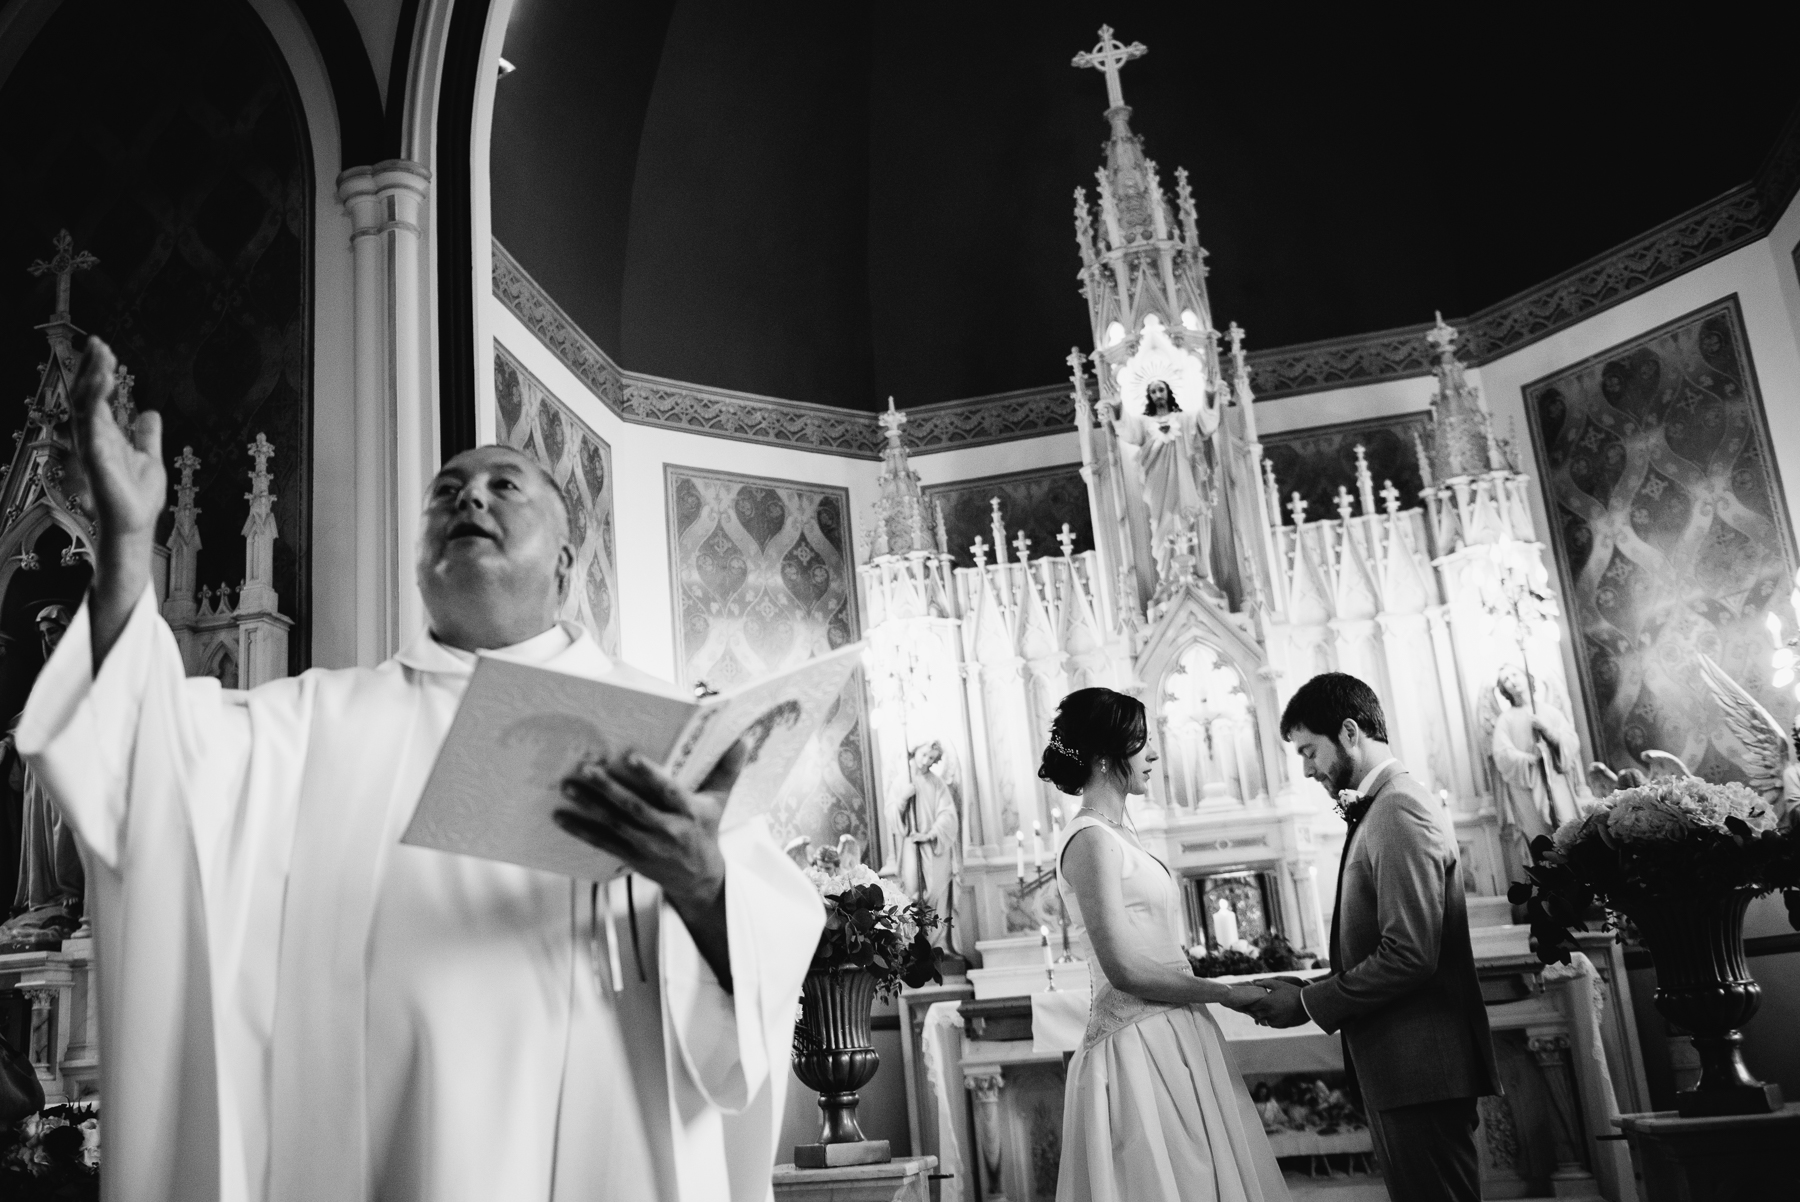 st. anne's chapel wedding ceremony vows